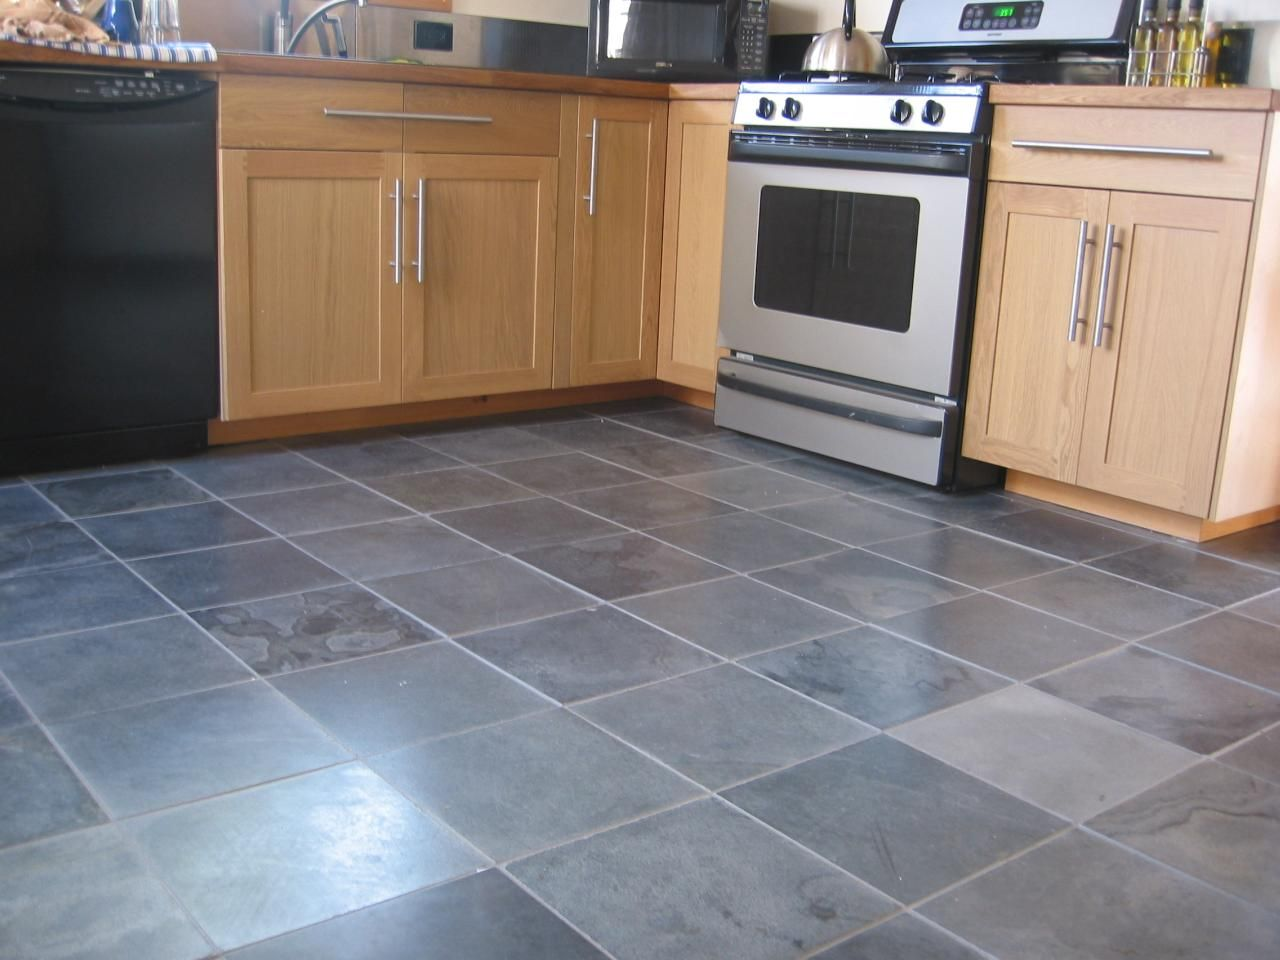 Lino Flooring For Kitchens This Gray Tile Flooring Will Be In My Ensuite Bathroom I Cant